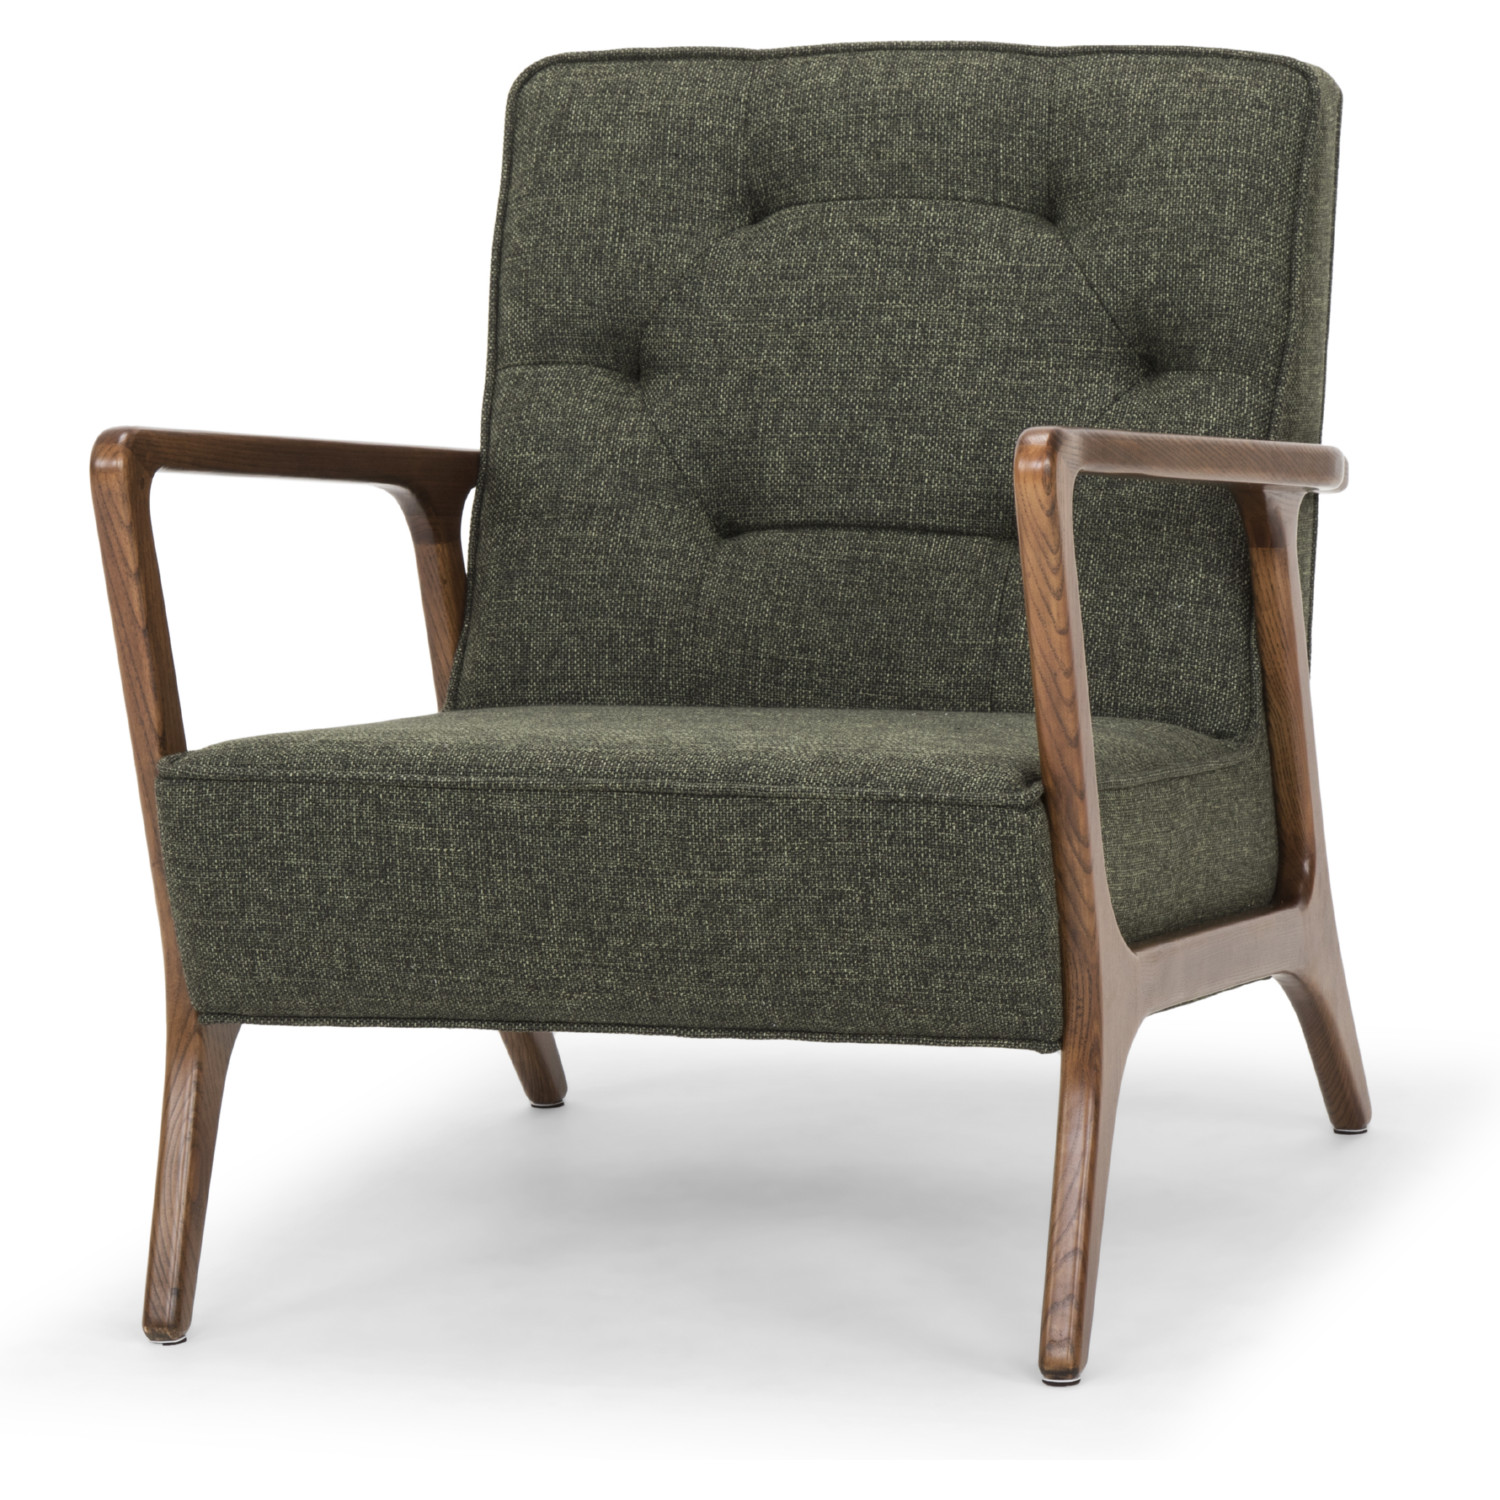 Picture of: Nuevo Hgsc281 Eloise Accent Chair In Tufted Hunter Green Tweed Fabric On Walnut Finish Ash